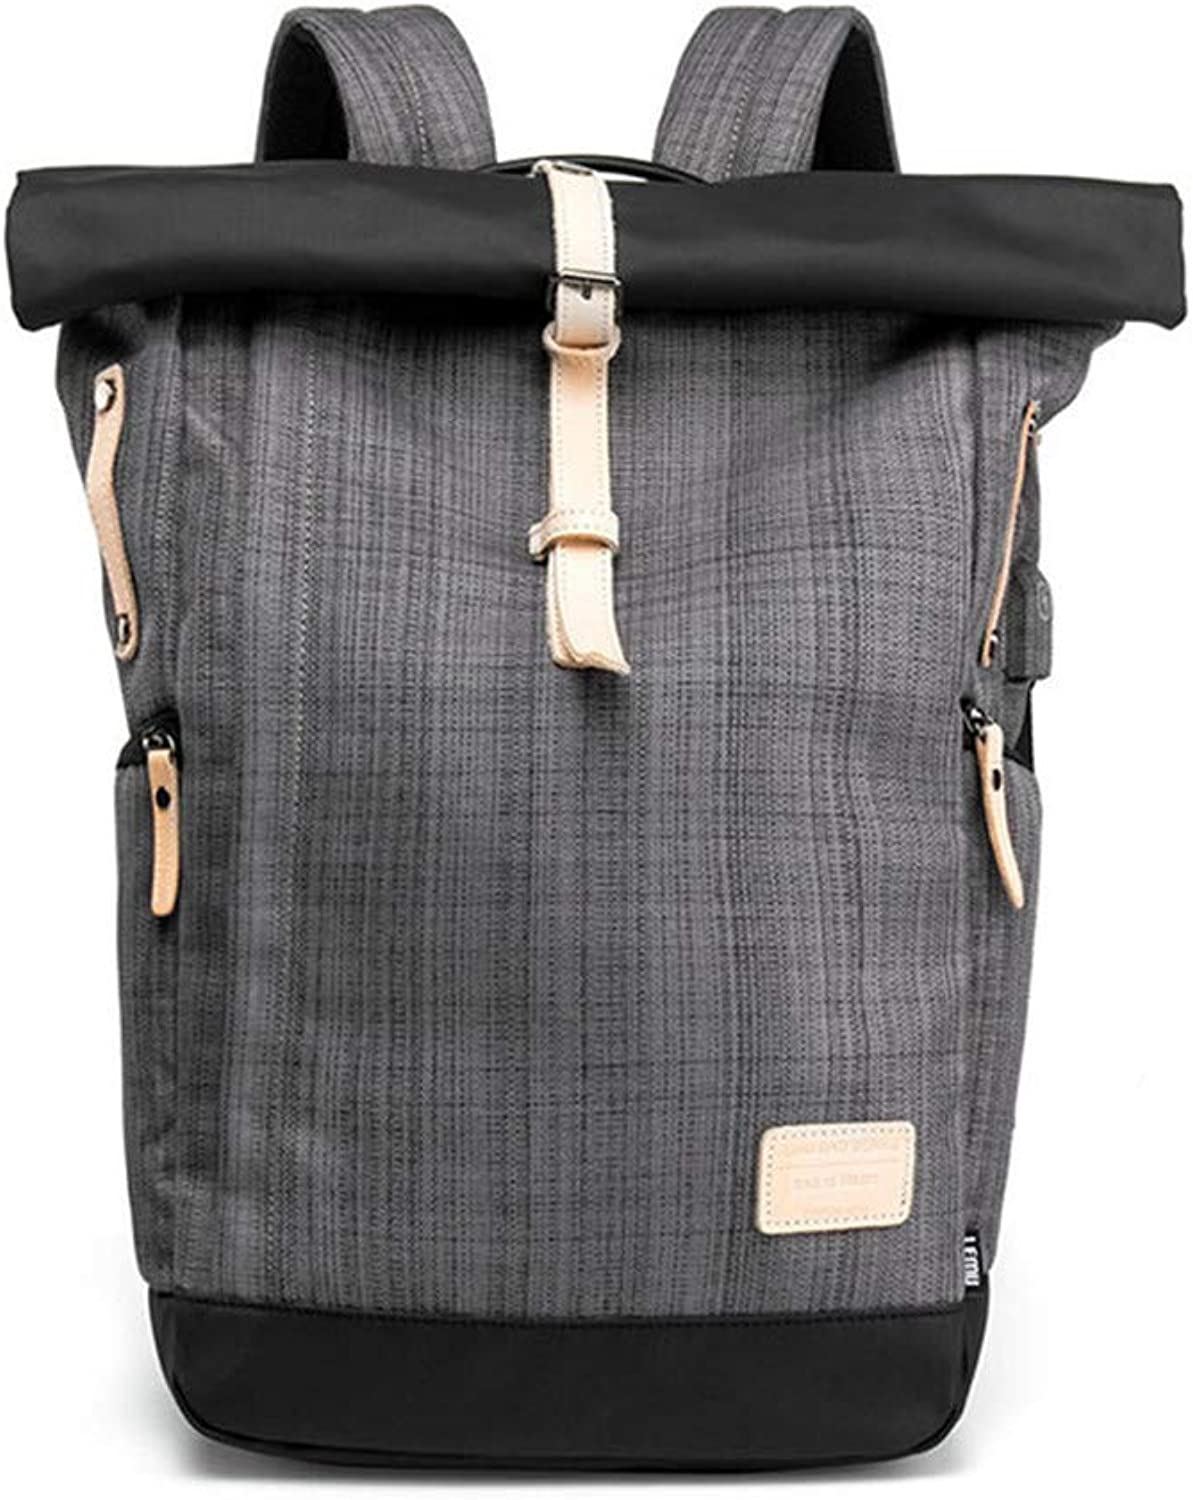 15.6 inch Laptop MultiFunction Oxford Cloth Large Travel Backpack